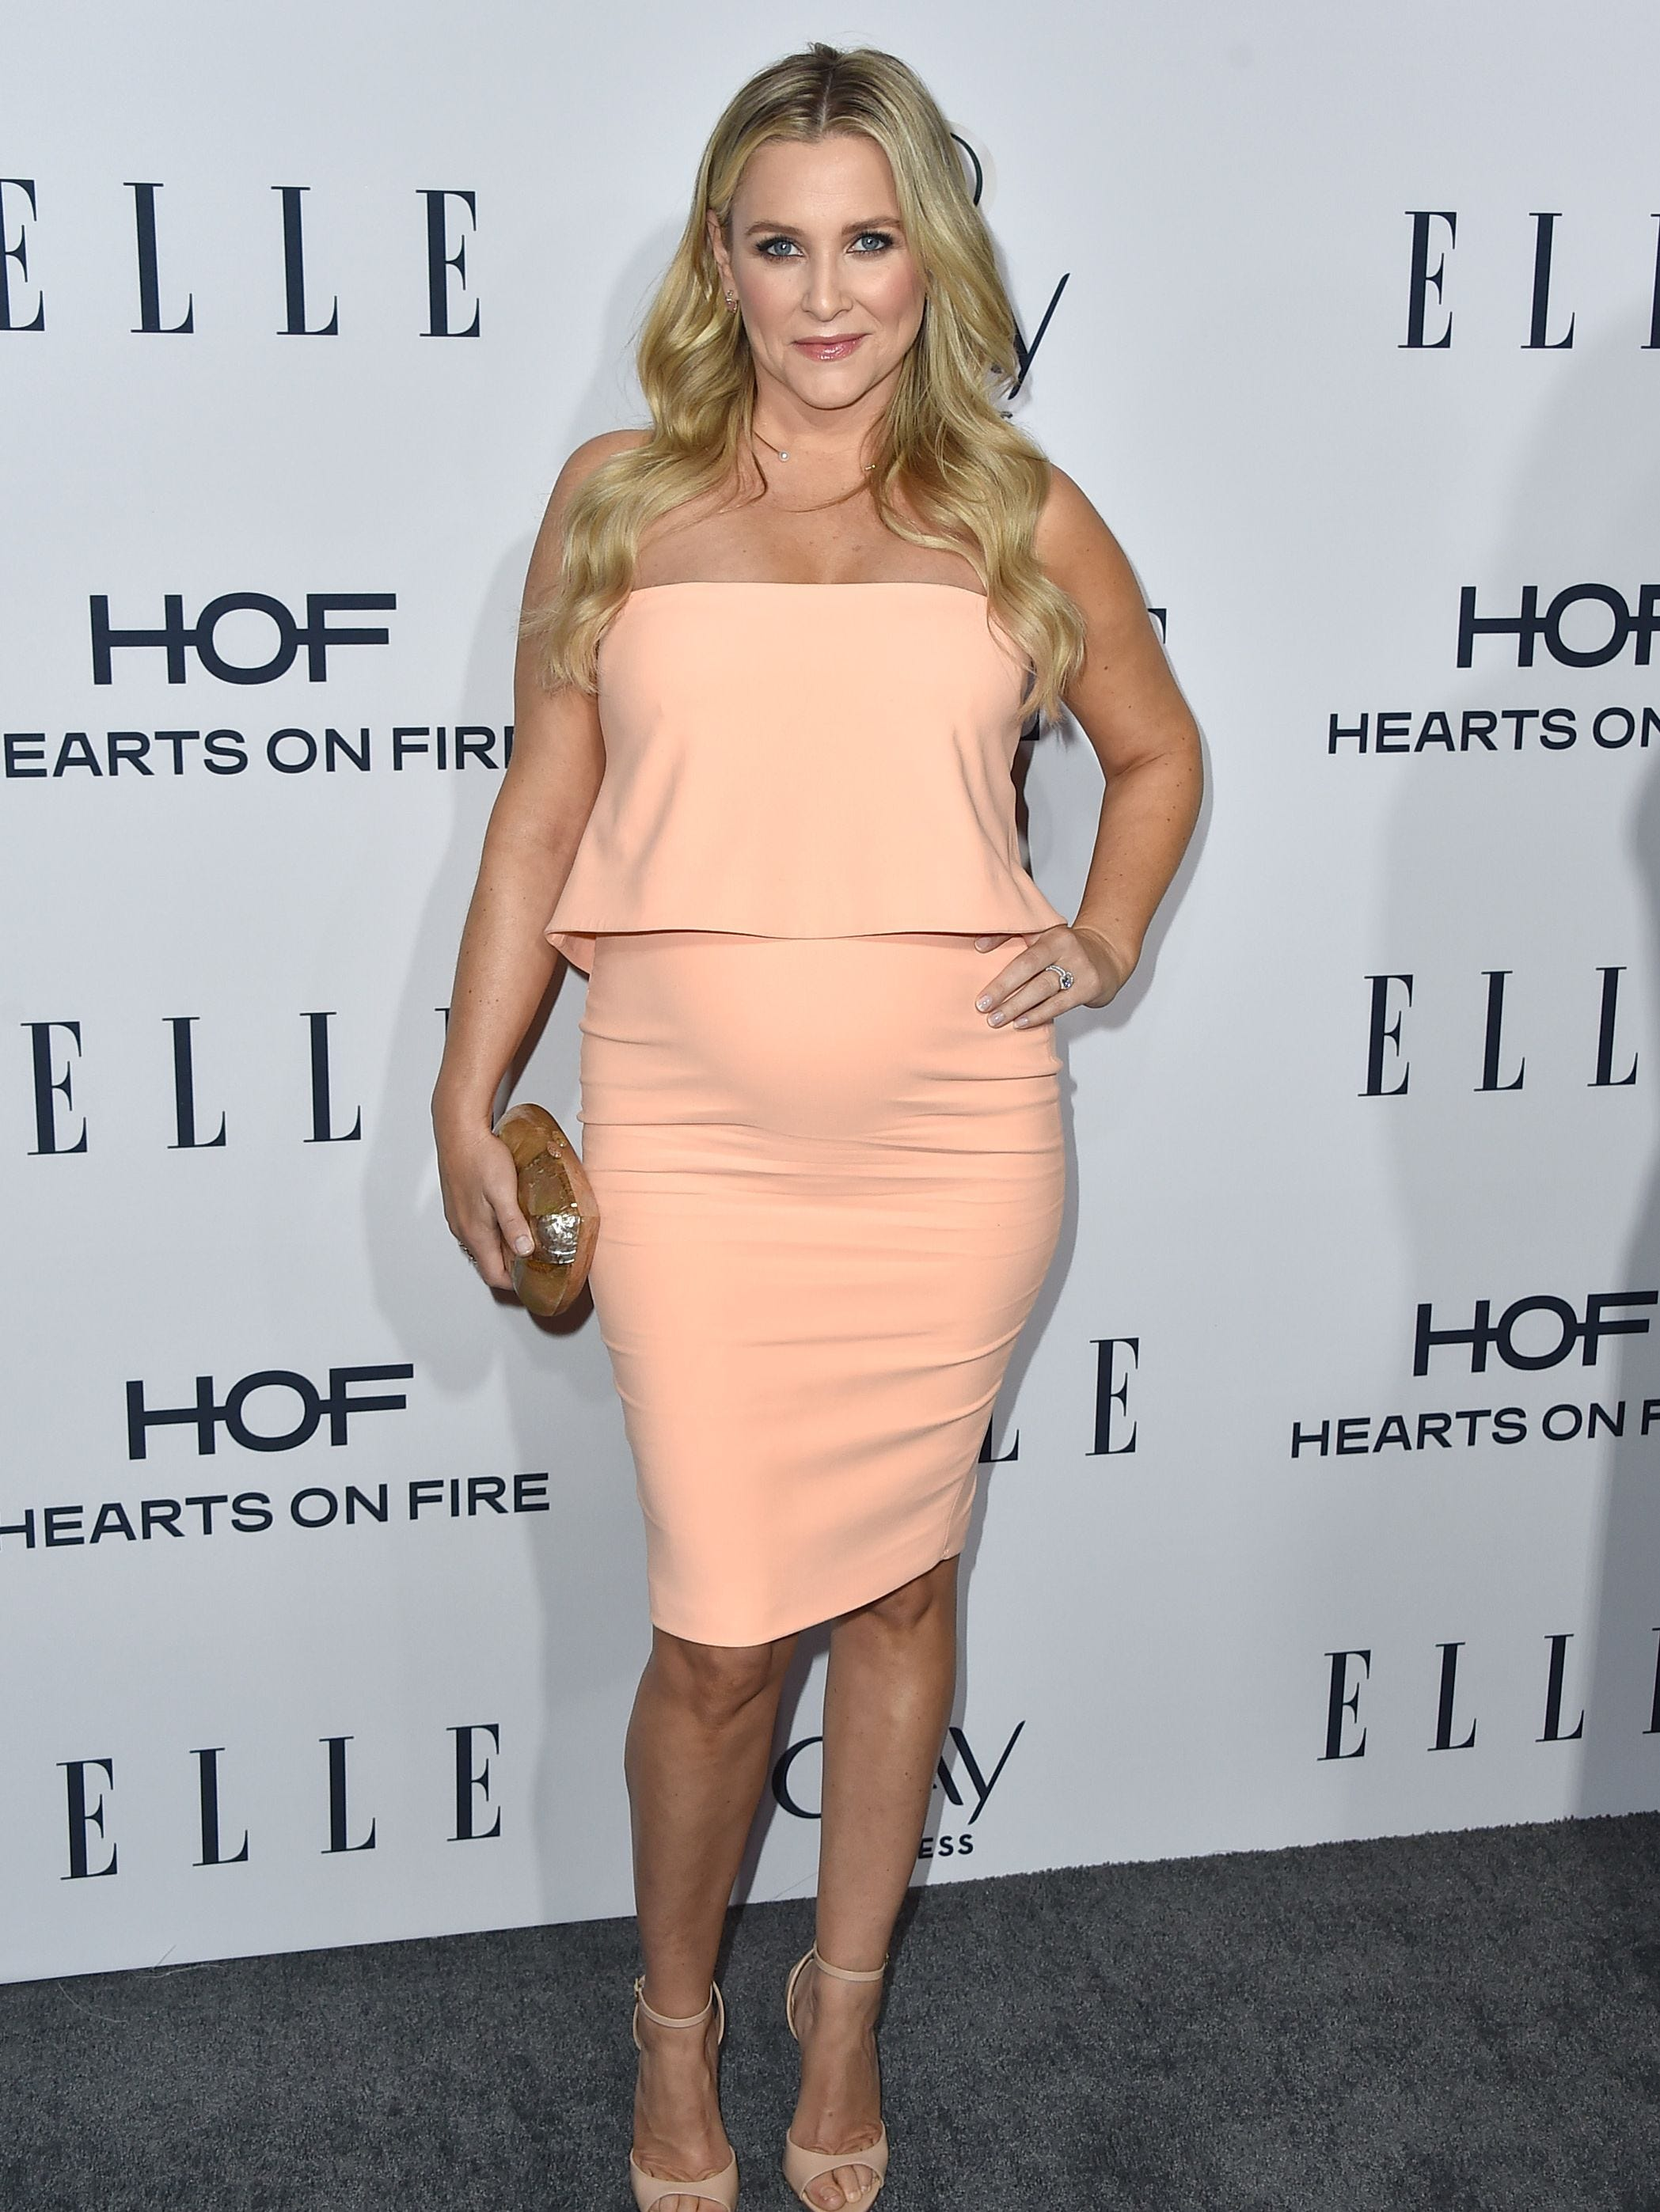 Actress Jessica Capshaw at ELLE's Women In Television Celebration presented by Hearts on Fire Diamonds. Jessica Capshaw portrayed the role of Dr. Arizona Robbins on Grey's Anatomy